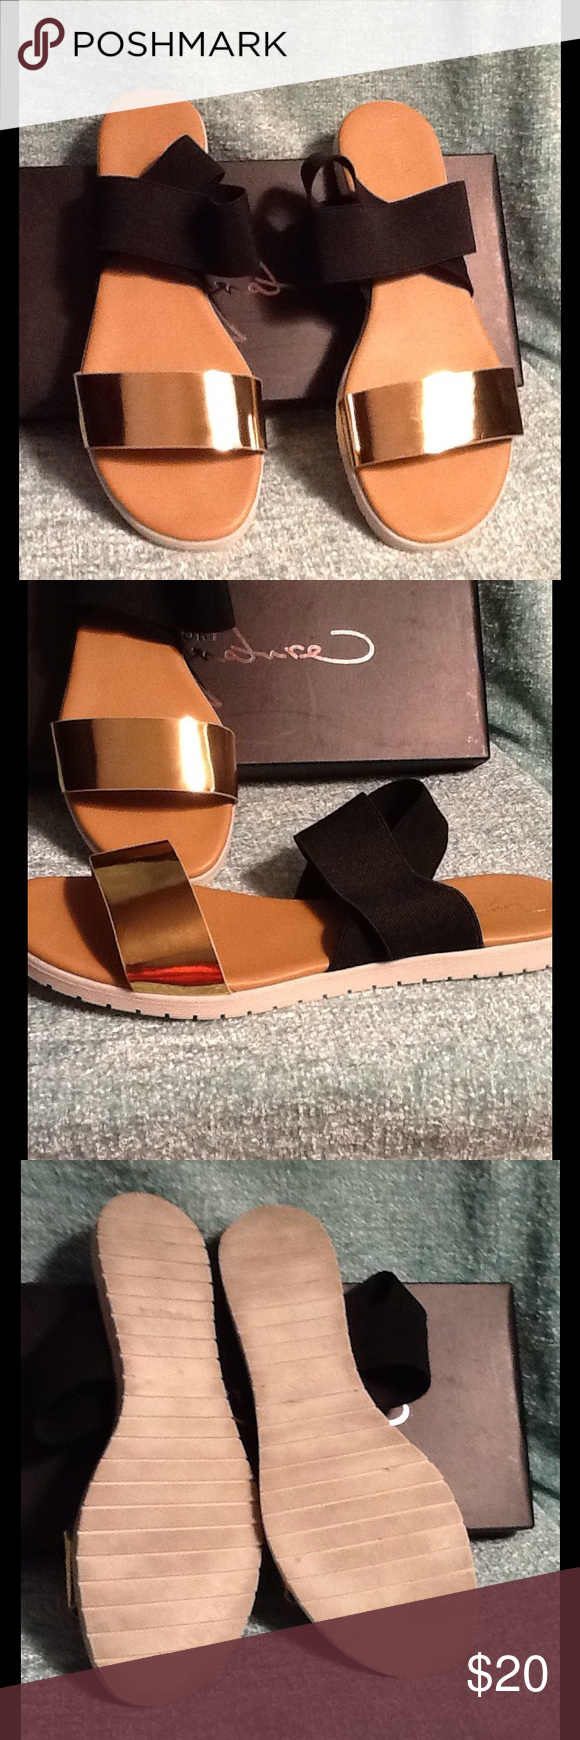 Black and Bronze Flat Sandals In original box. These are new but were worn in a department store fashion show. Manmade with cushioned footbed. Made by Report Signature and have the style name of Peyson. Elastic straps around the ankle. Report Signature Shoes Sandals